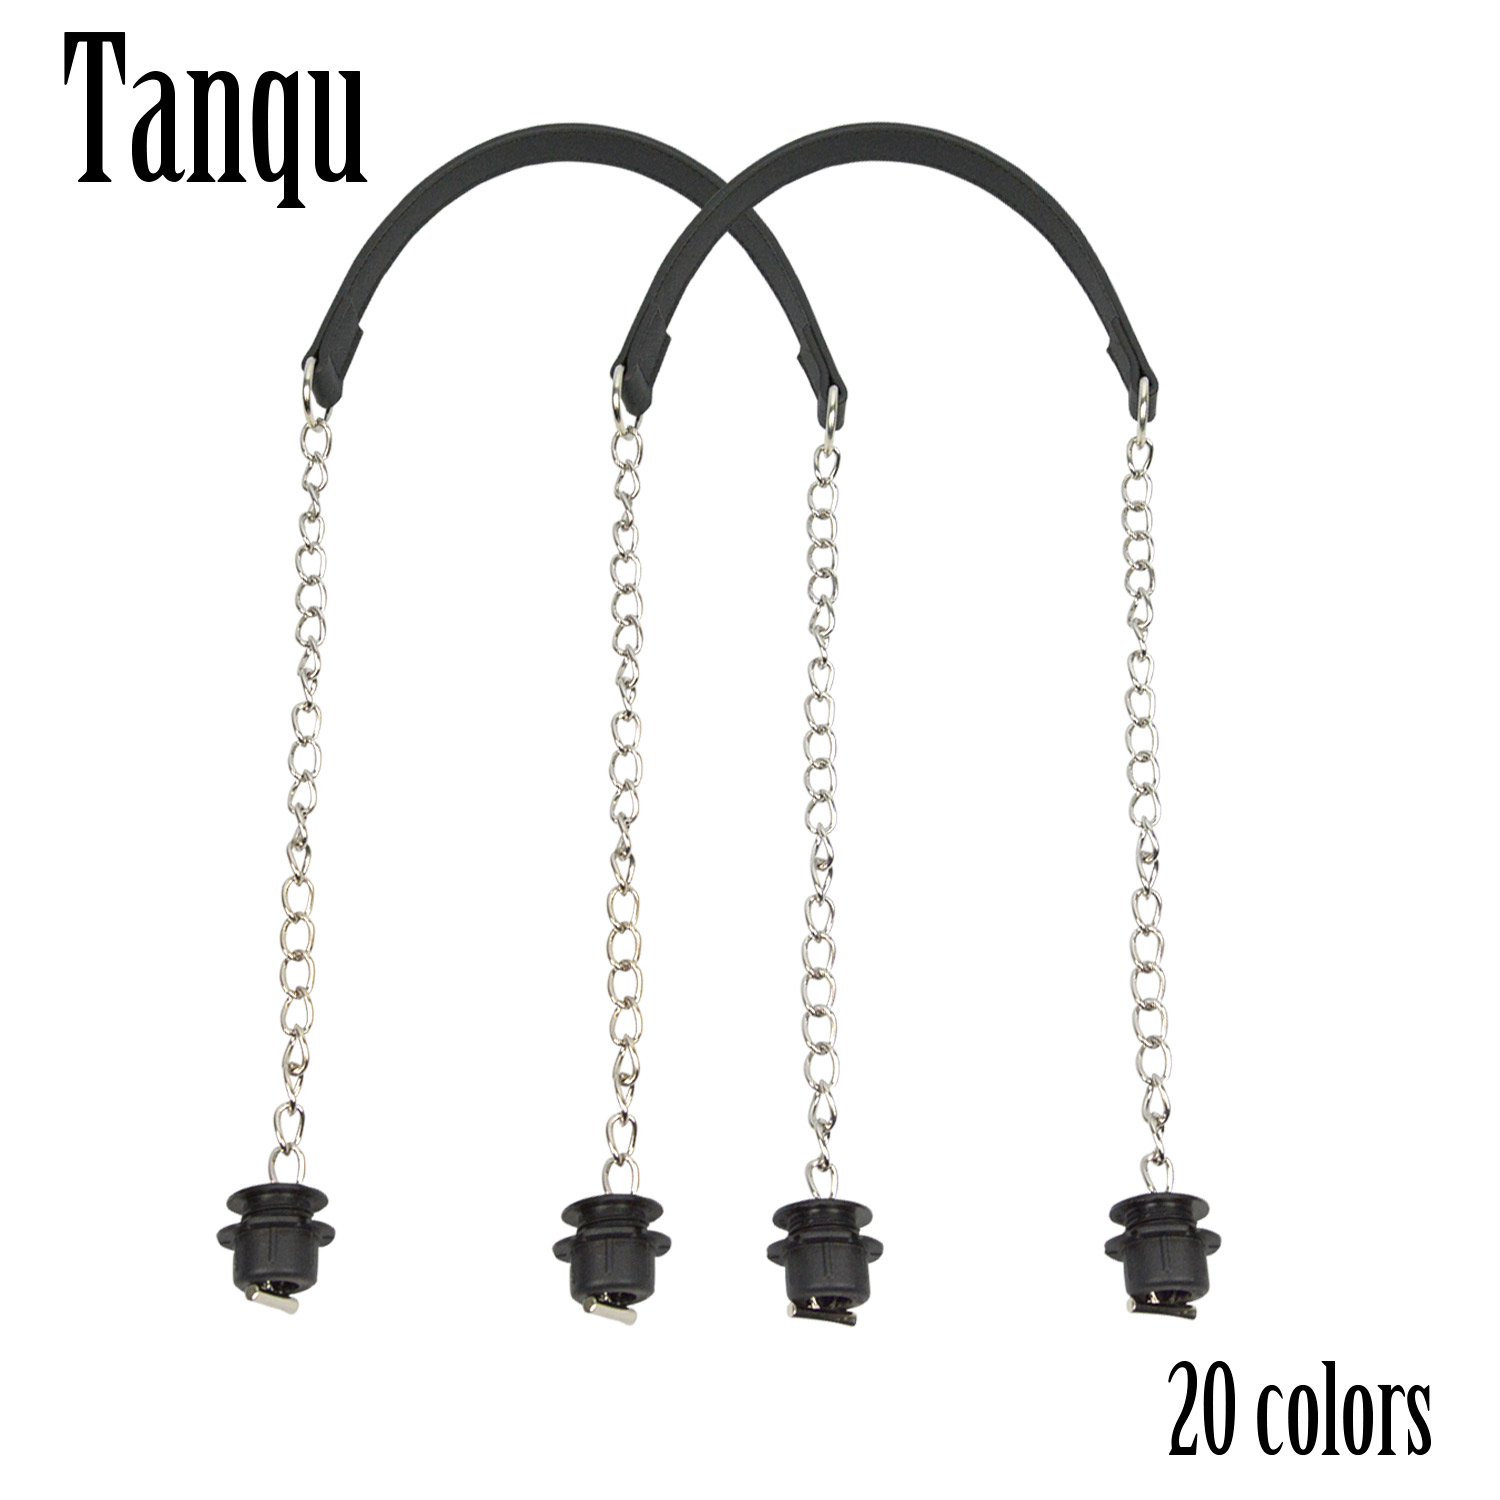 New Tanqu 1 Pair Silver Long Thick Single Chain with OT metal buckle Black screws for Obag O bag Handles for Women Bag Handbags in Bag Parts Accessories from Luggage Bags